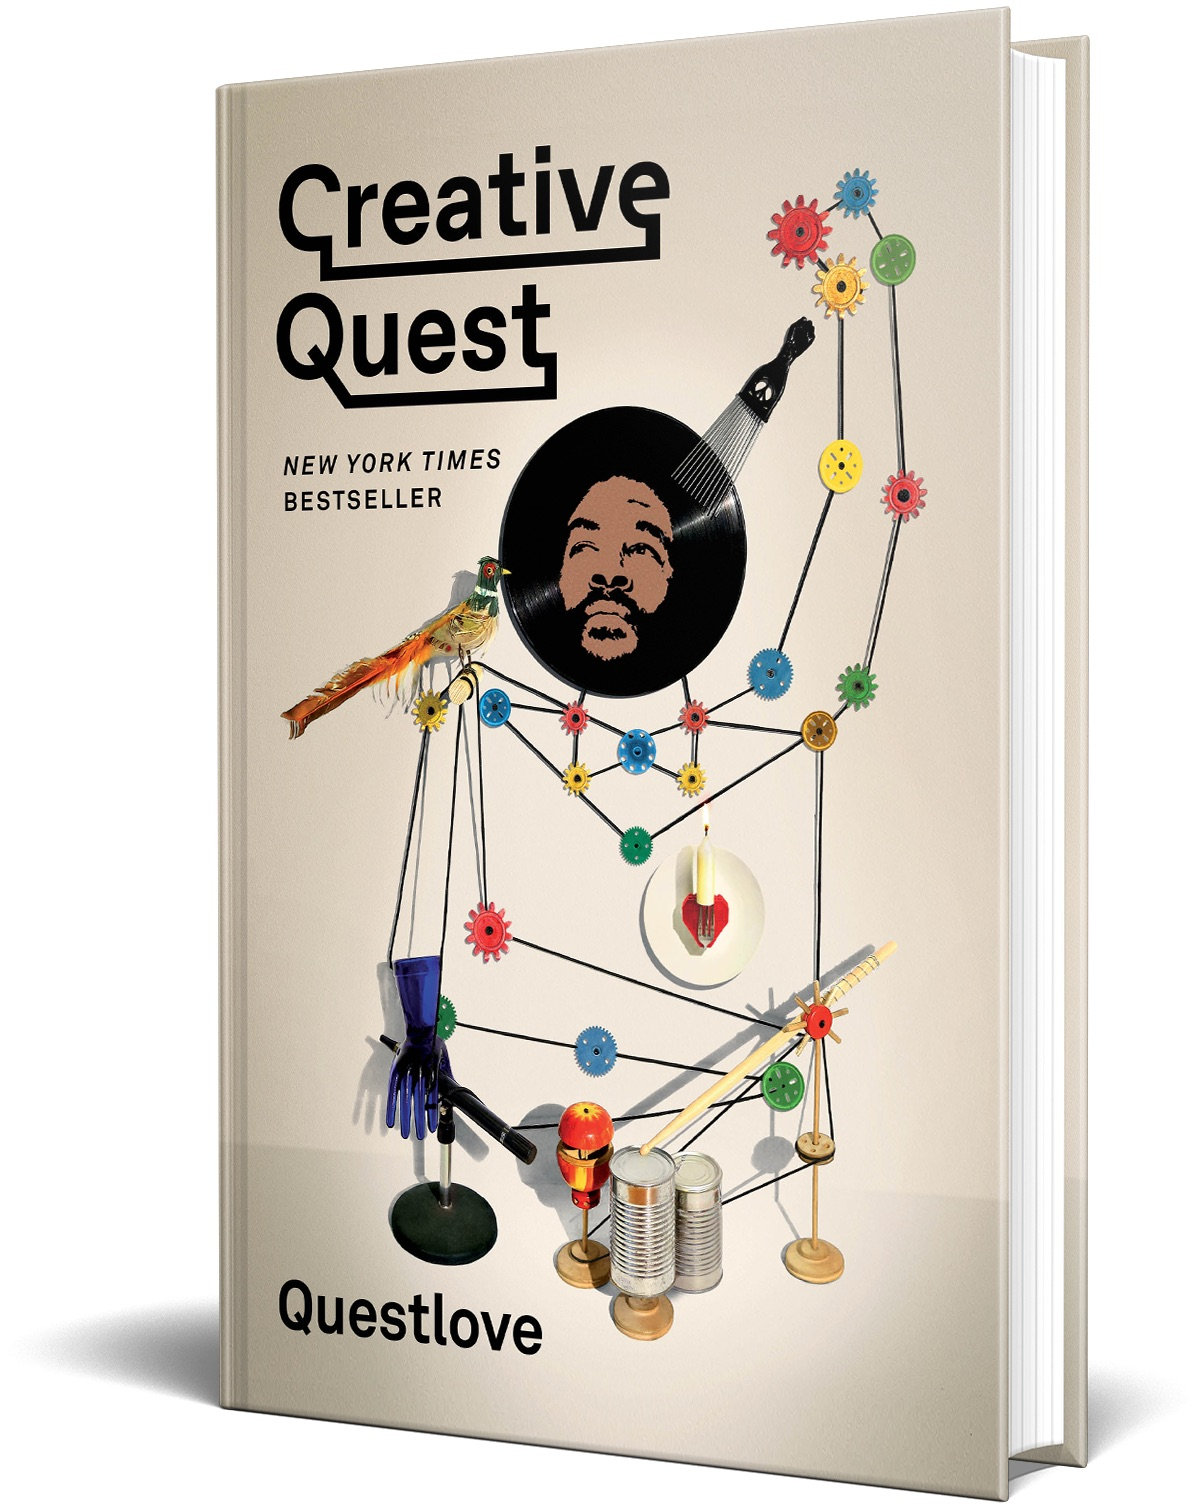 cover of Creative Quest by Questlove